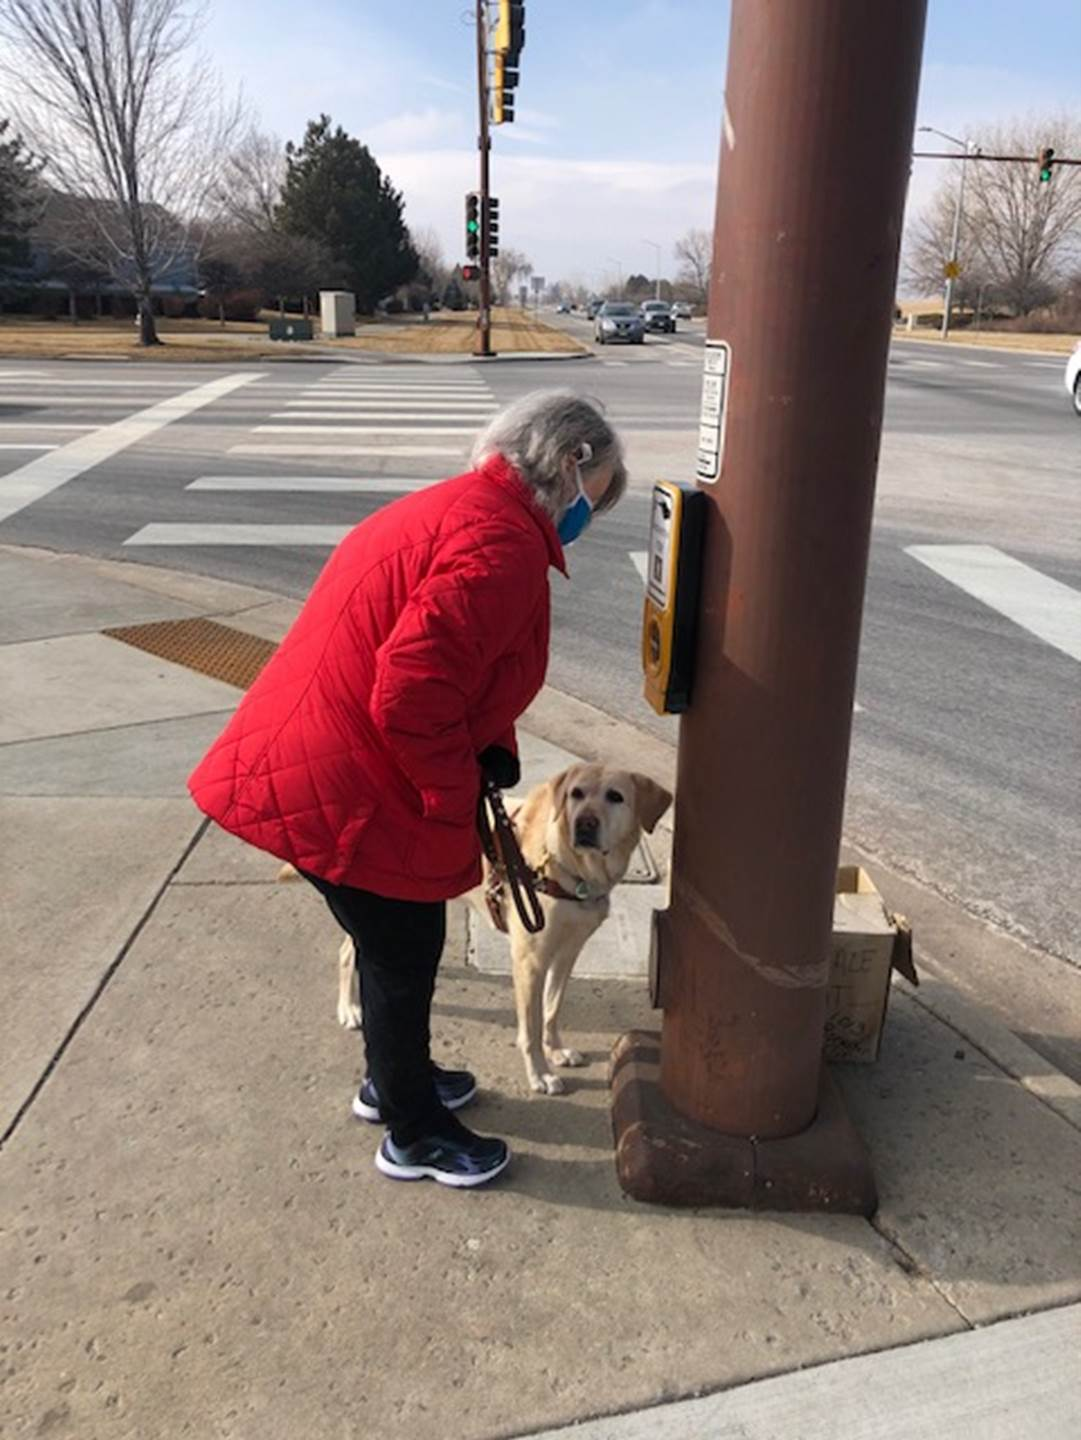 Sherry Gomes at the crosswalk with her Labrador, Shani. Sherry is a white woman with a red coat.